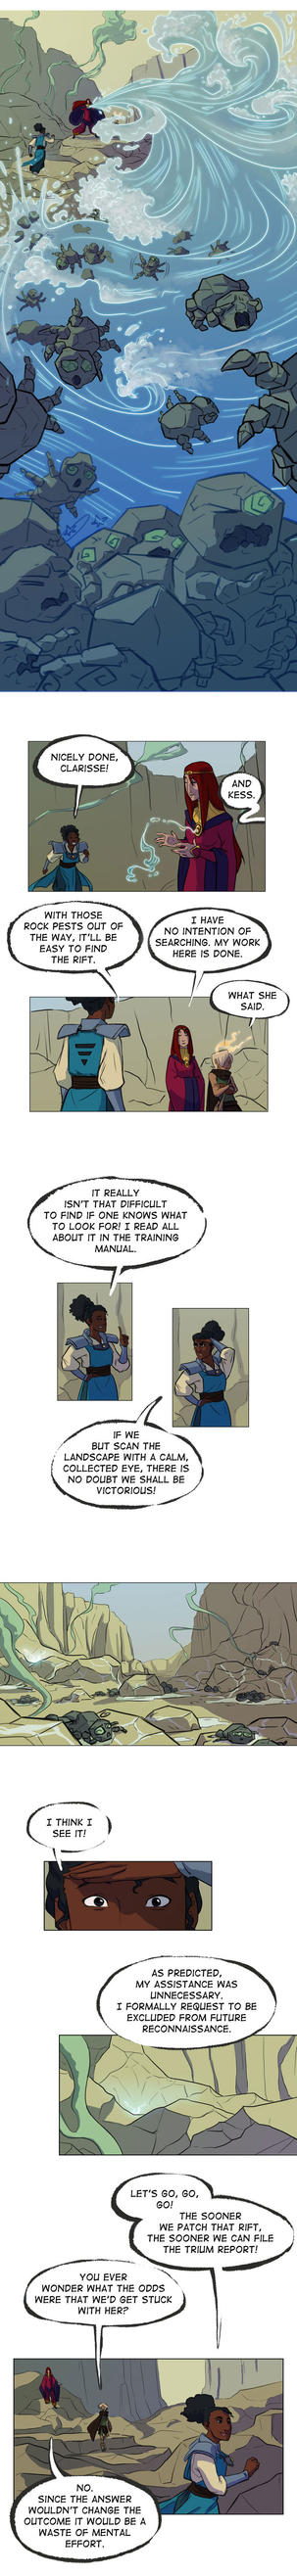 The Trium Report pg 2 by betsyillustration